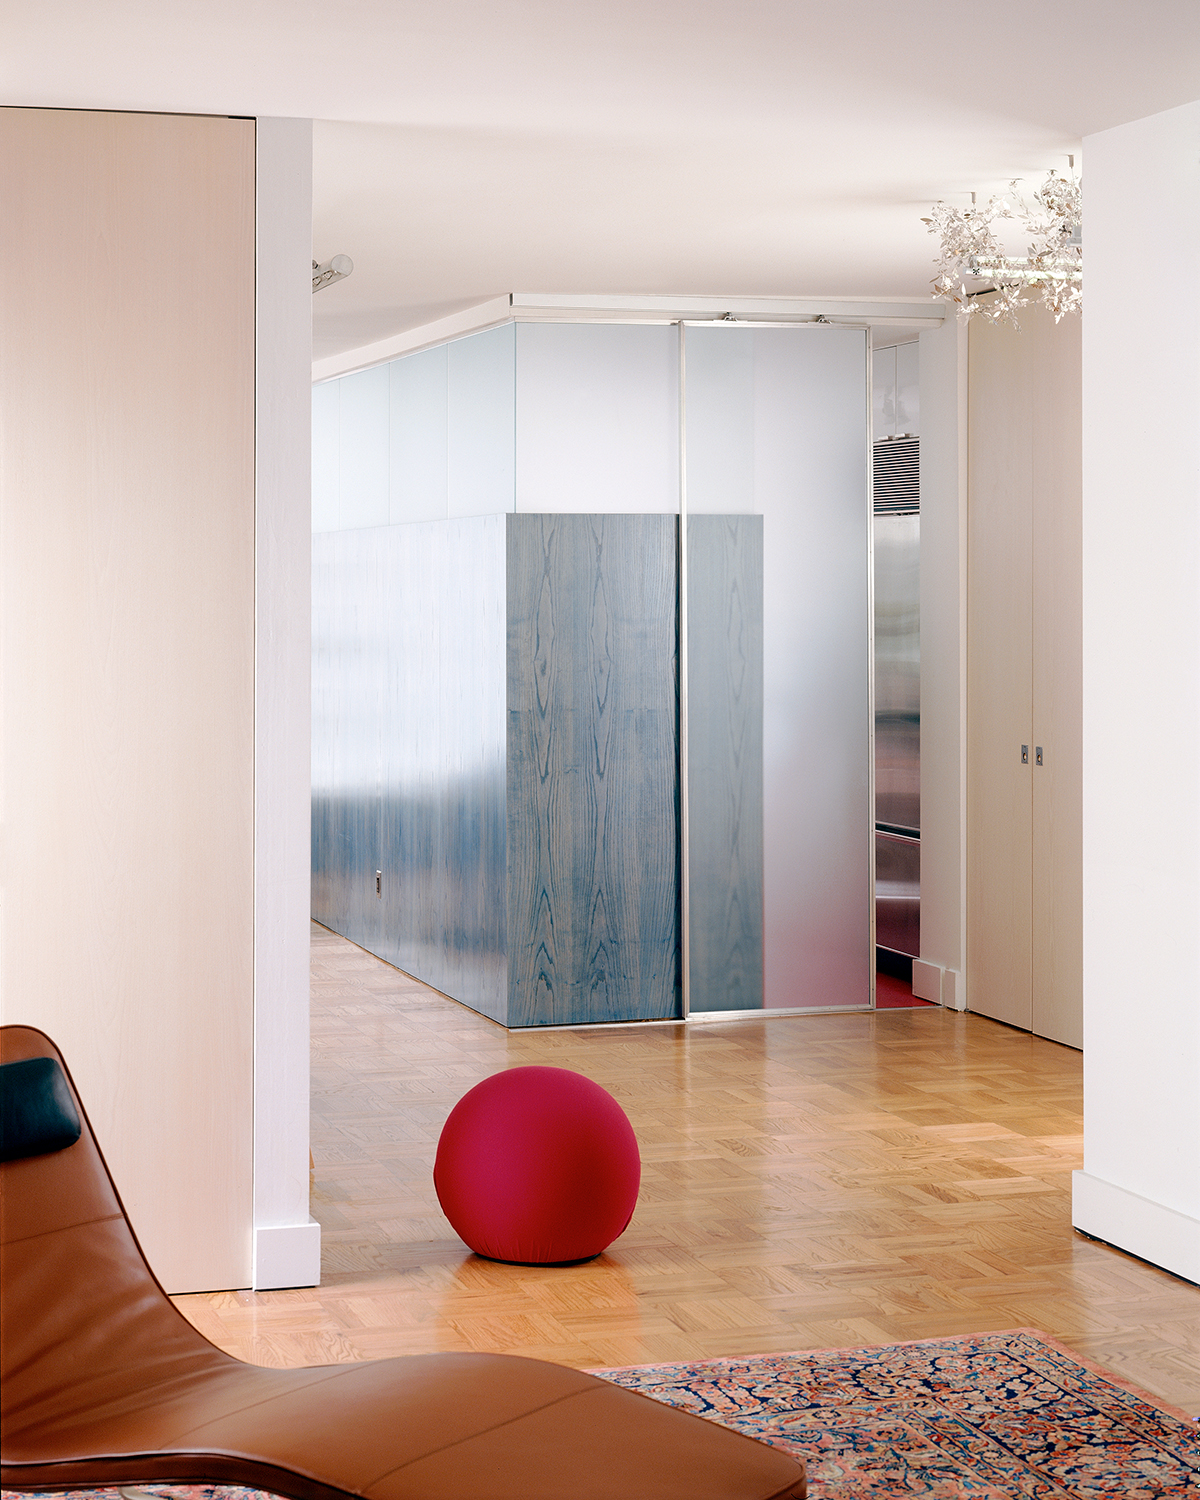 greenwich village apartment translucent partition